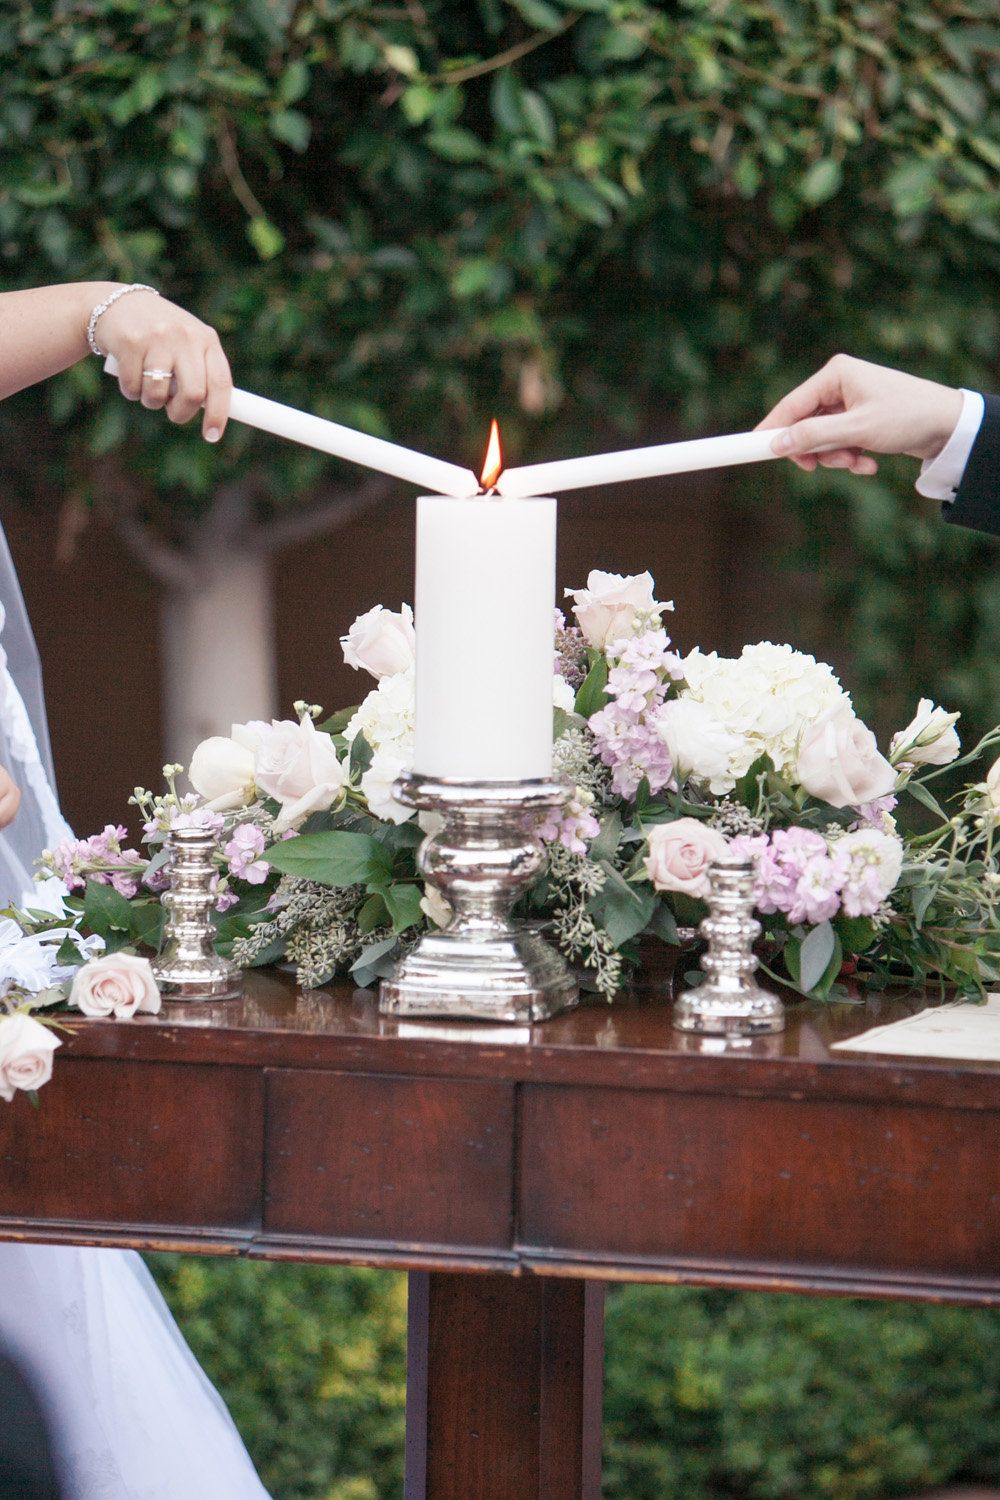 Bride Amp Groom Light Unity Candle During Outdoor Ceremony Floral Arrangement Sits On Table